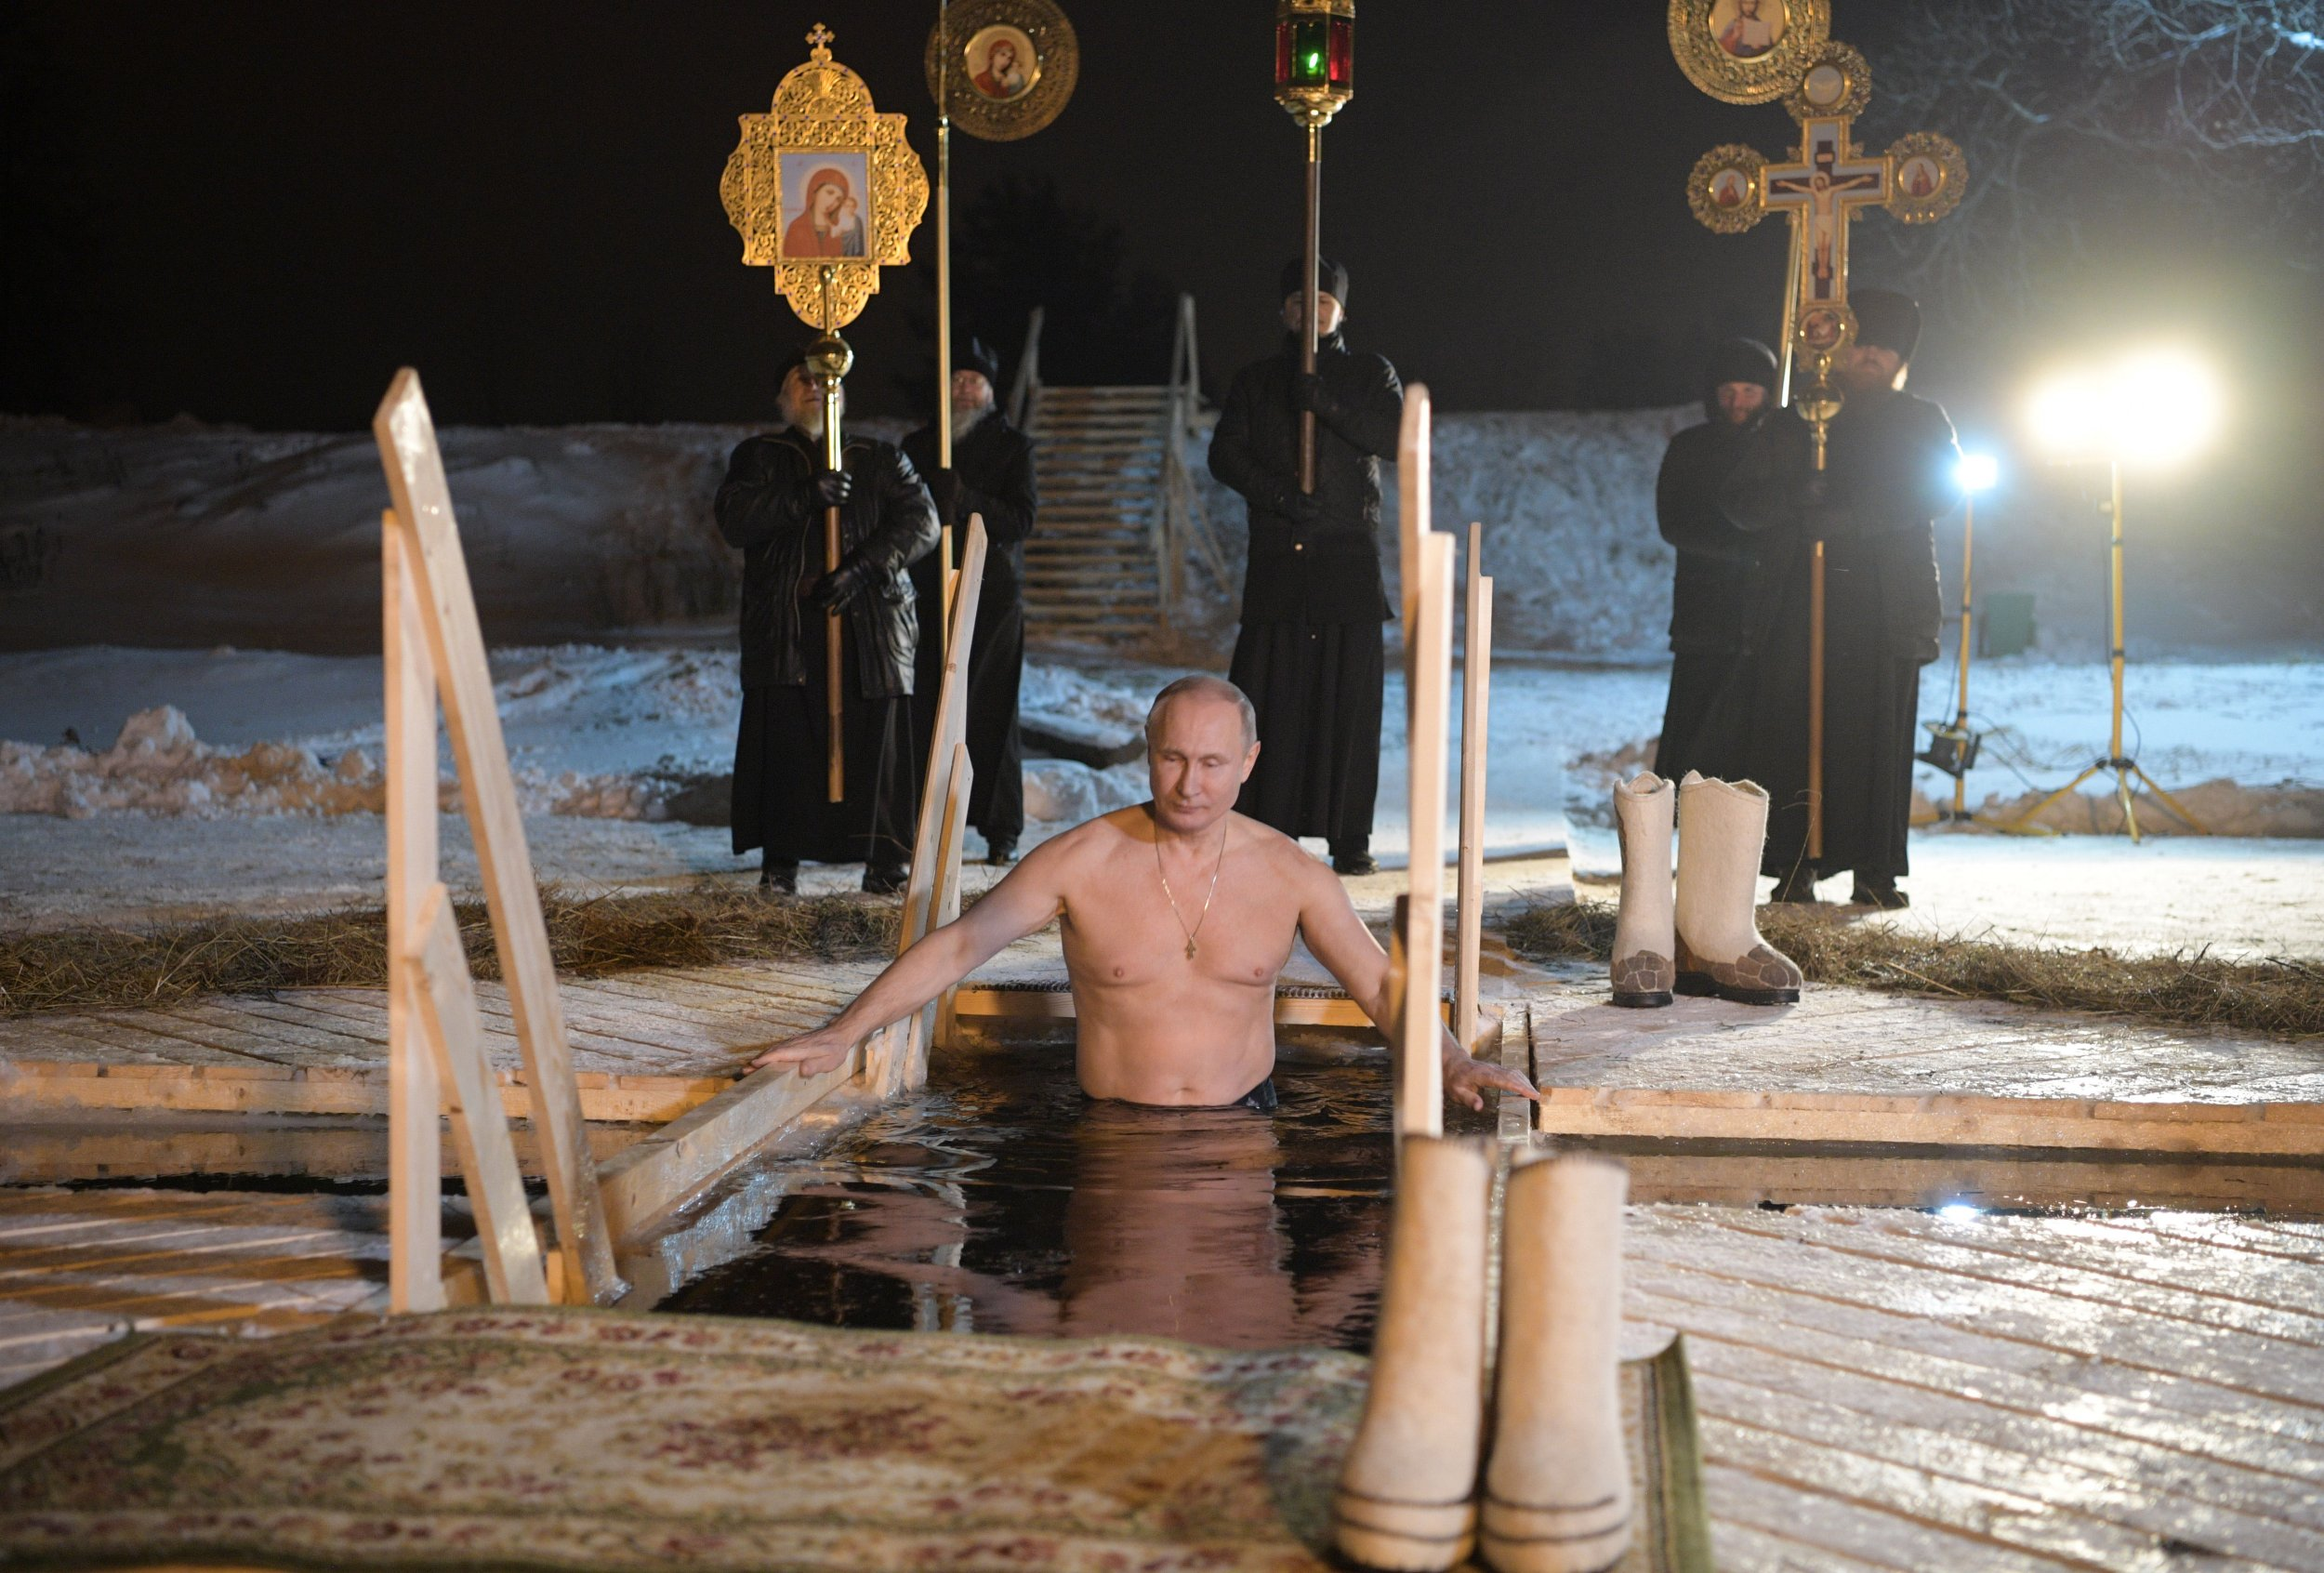 Putin's New Calendar: Topless With Fish, Bathing With